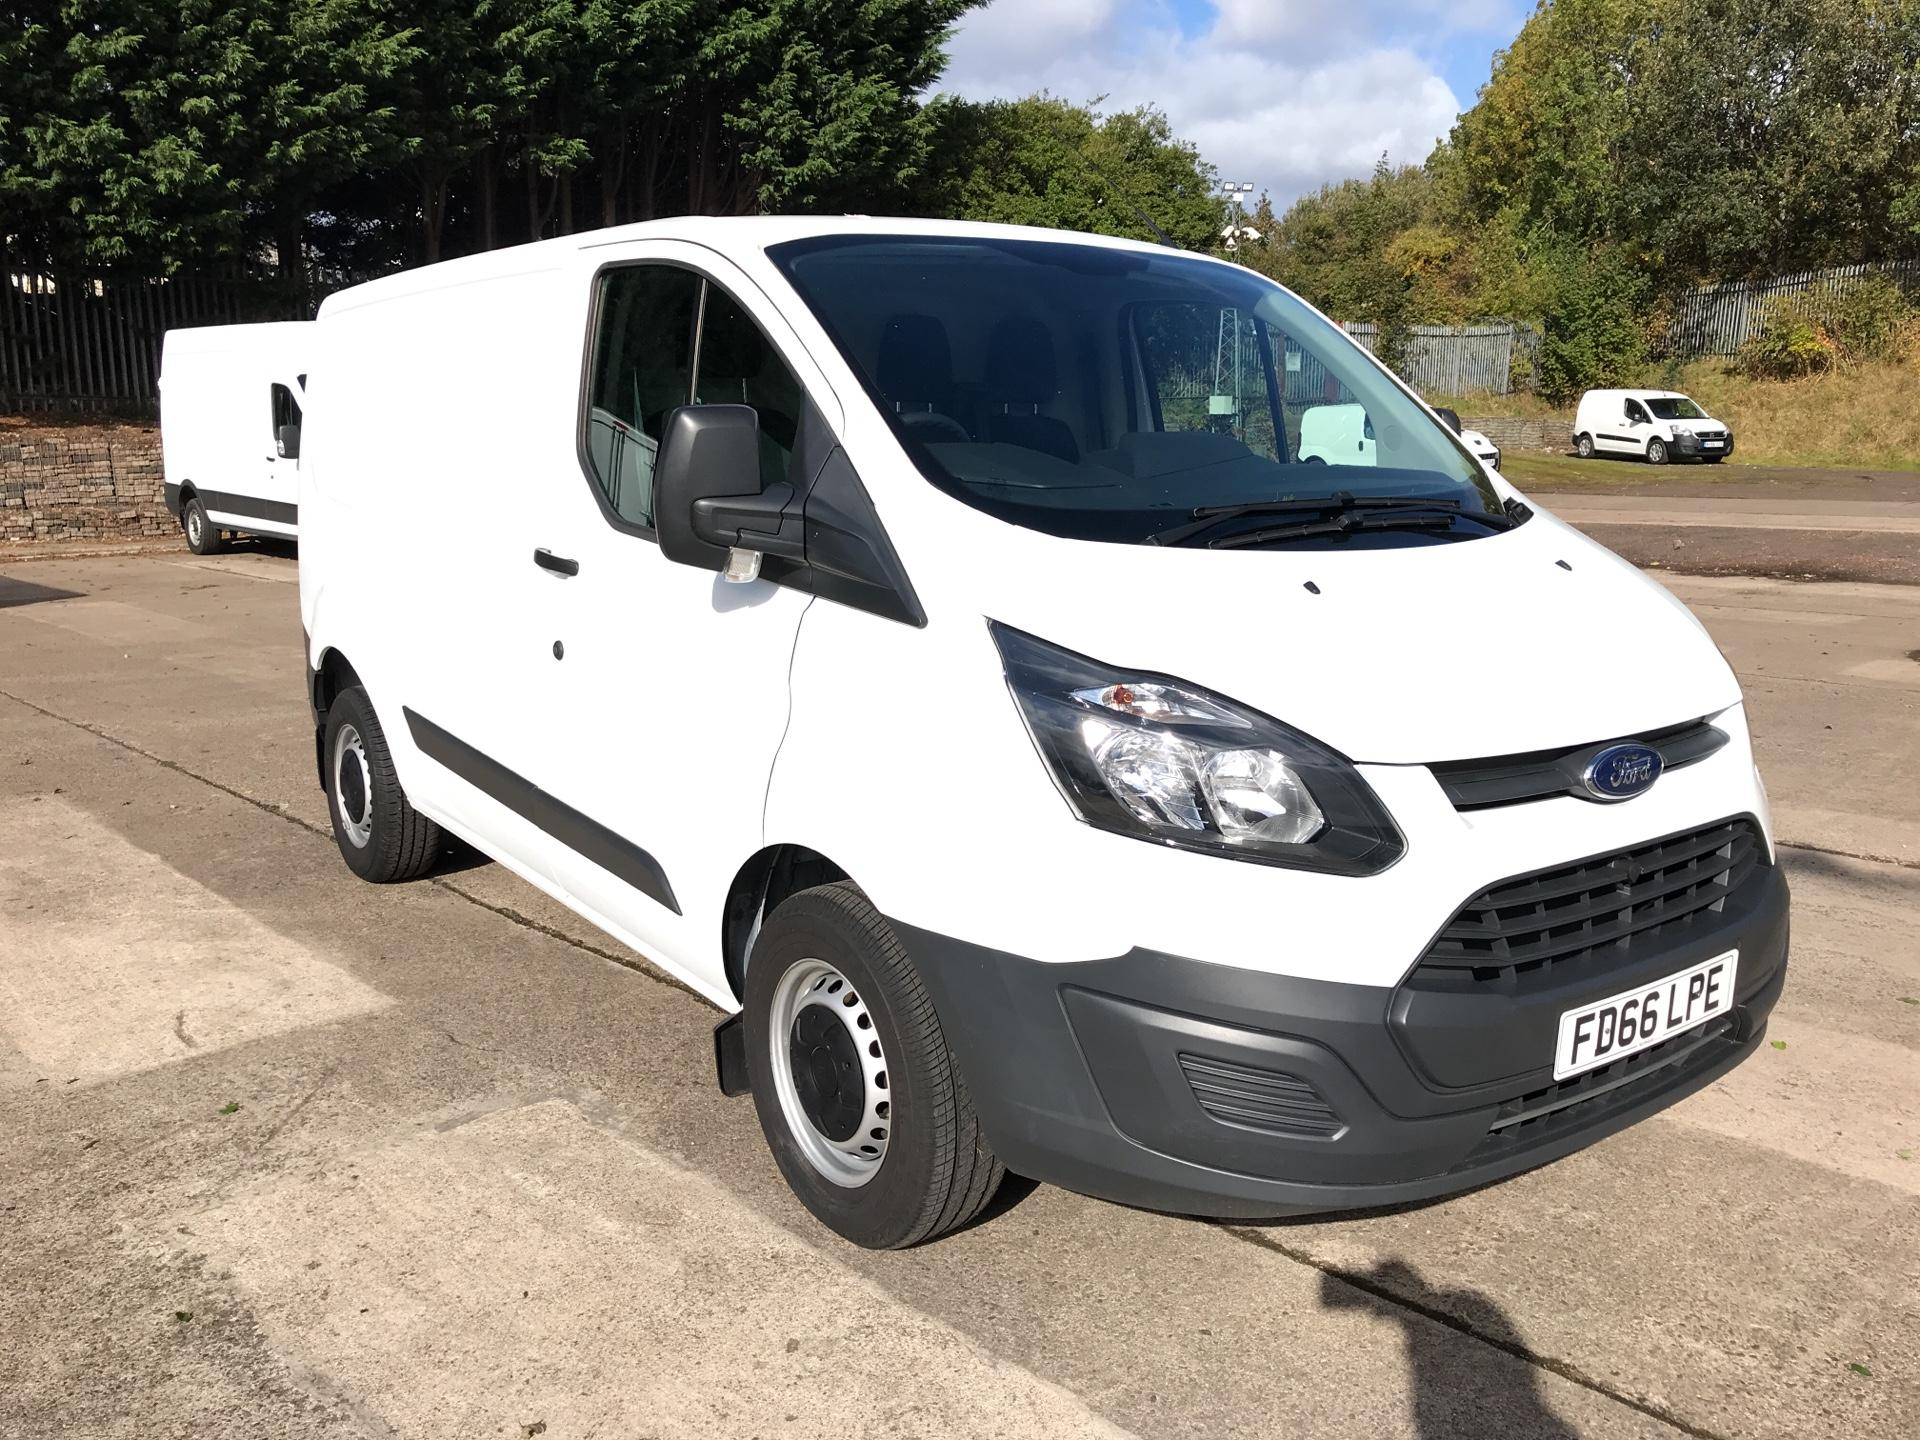 2016 Ford Transit Custom 290 L1 DIESEL FWD 2.0 TDCI 105PS LOW ROOF VAN EURO 6 (FD66LPE)